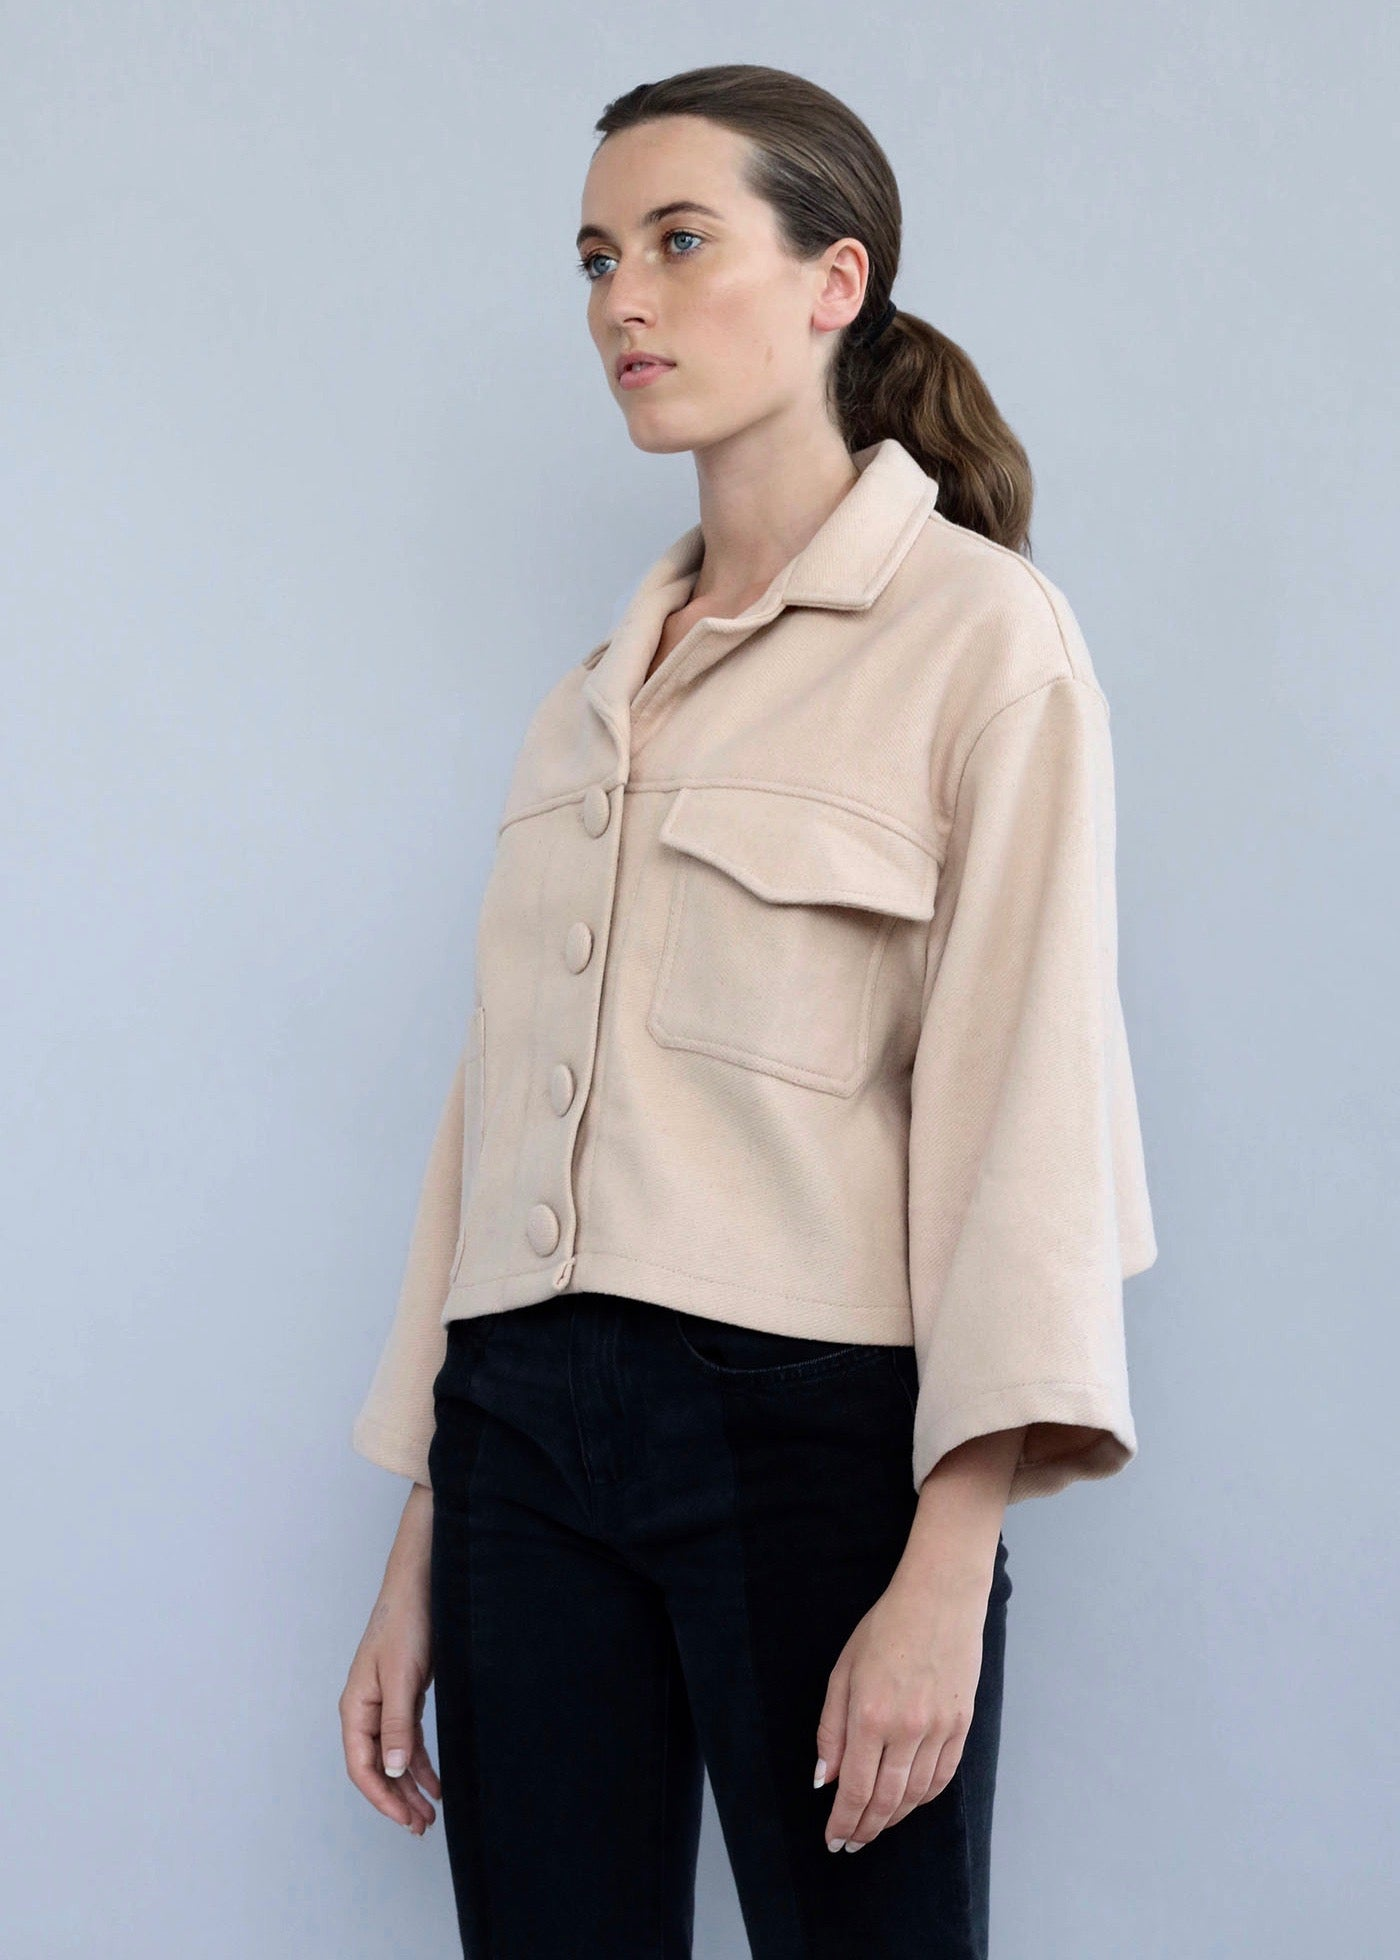 853df21bb5af Beige handmade Wool Cropped Utility Jacket featuring two real front pockets  from Selfi.